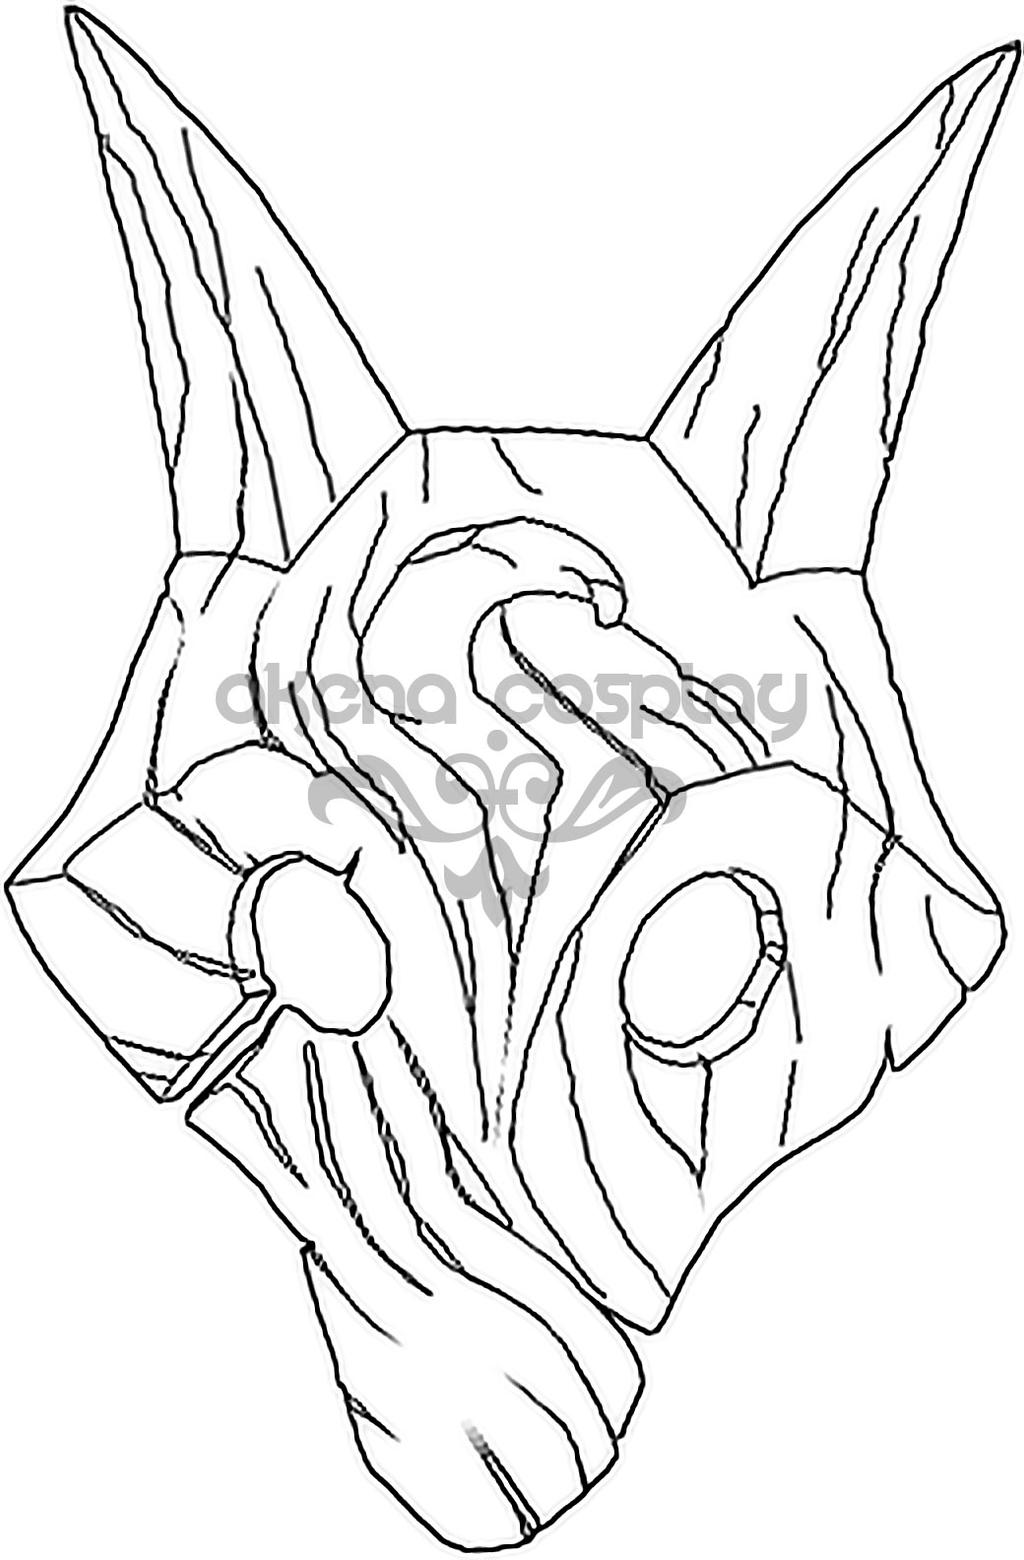 Line Art Templates : Kindred mask template by xxakenaangelxx on deviantart